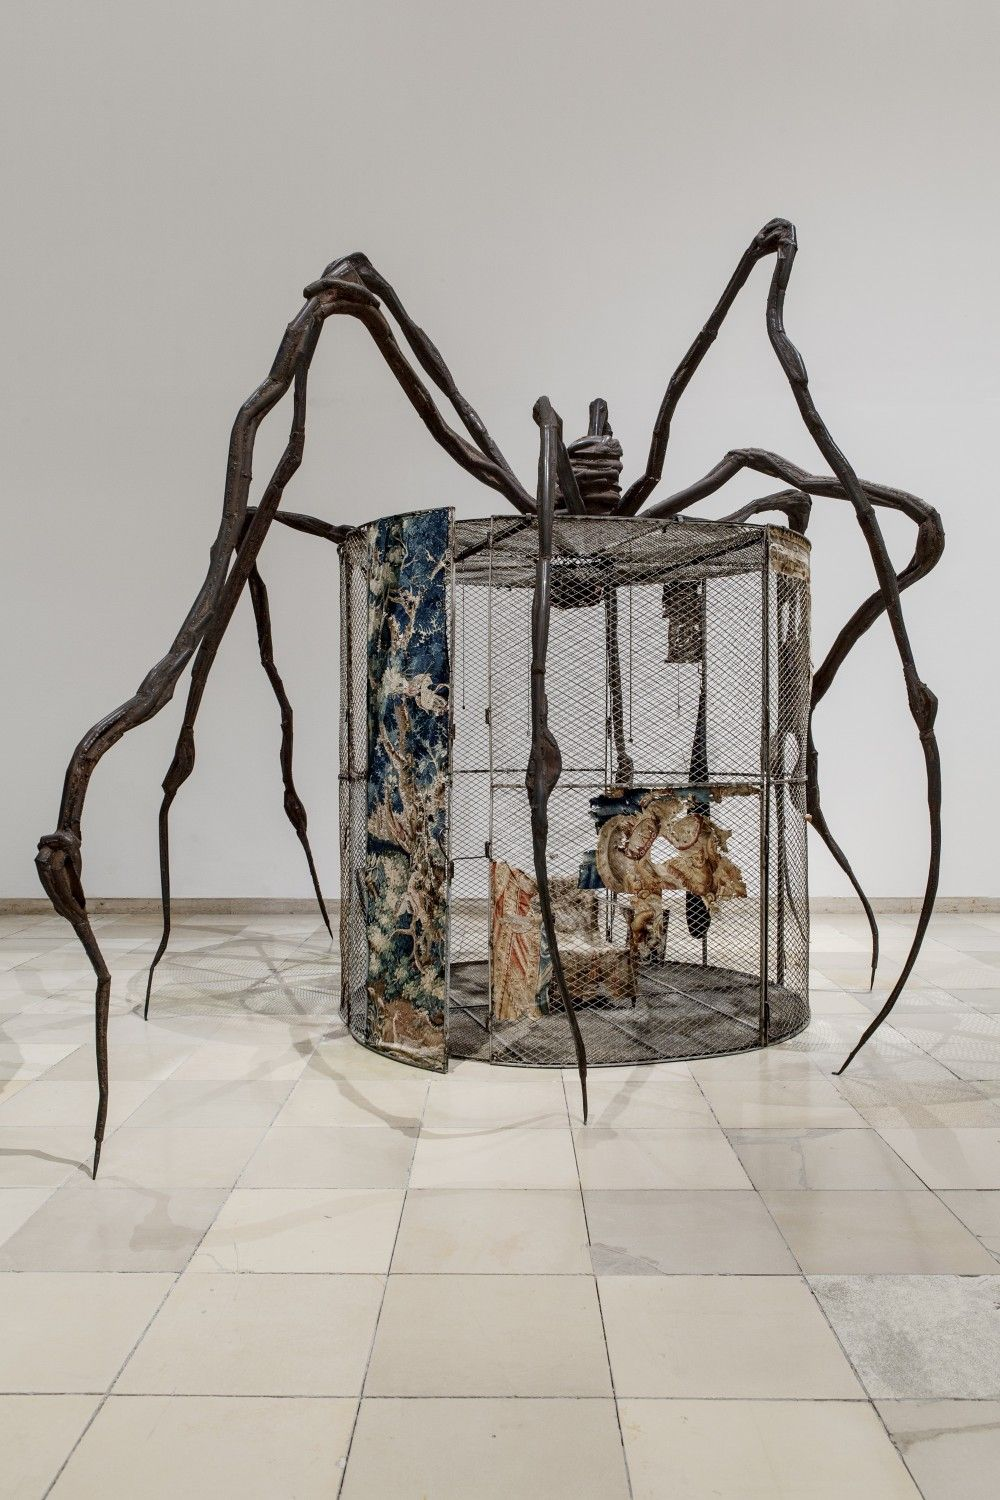 2019 year for girls- Inspired Inspirationfashion by art louise bourgeois maman